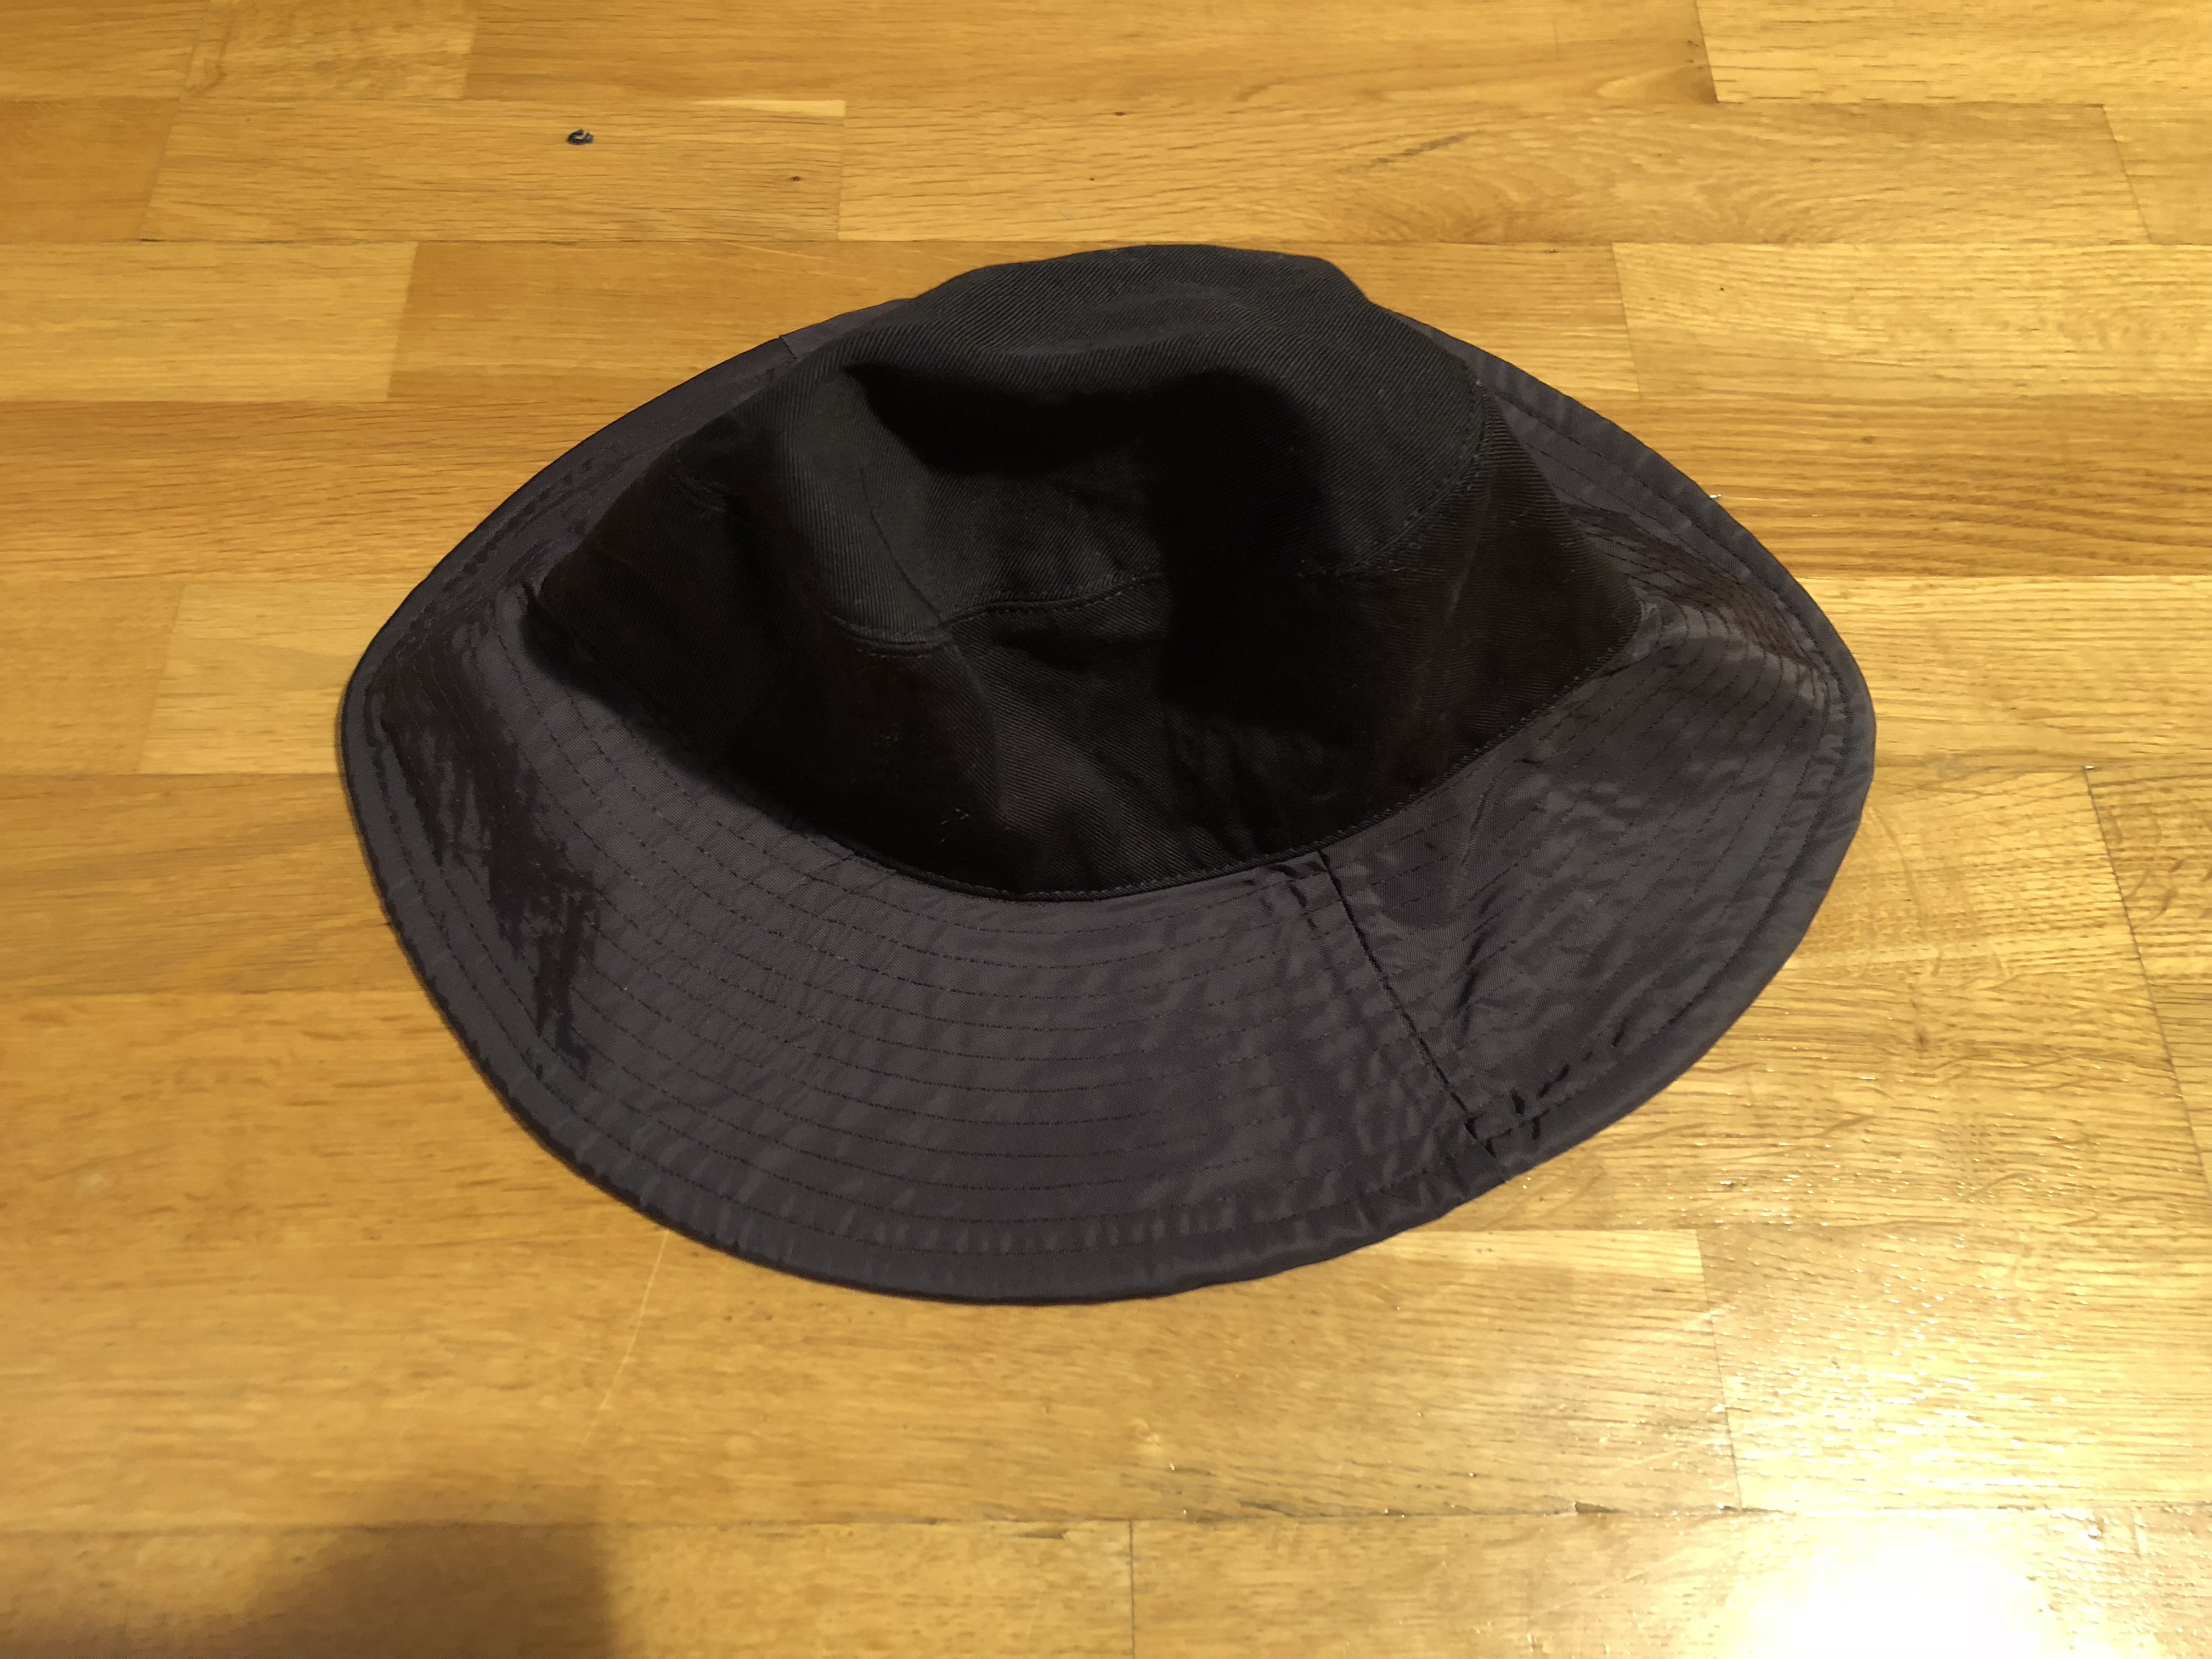 80becb11c1f Acne Studios Black Bucket Hat SS17 Nylon Cotton Twill Size one size ...